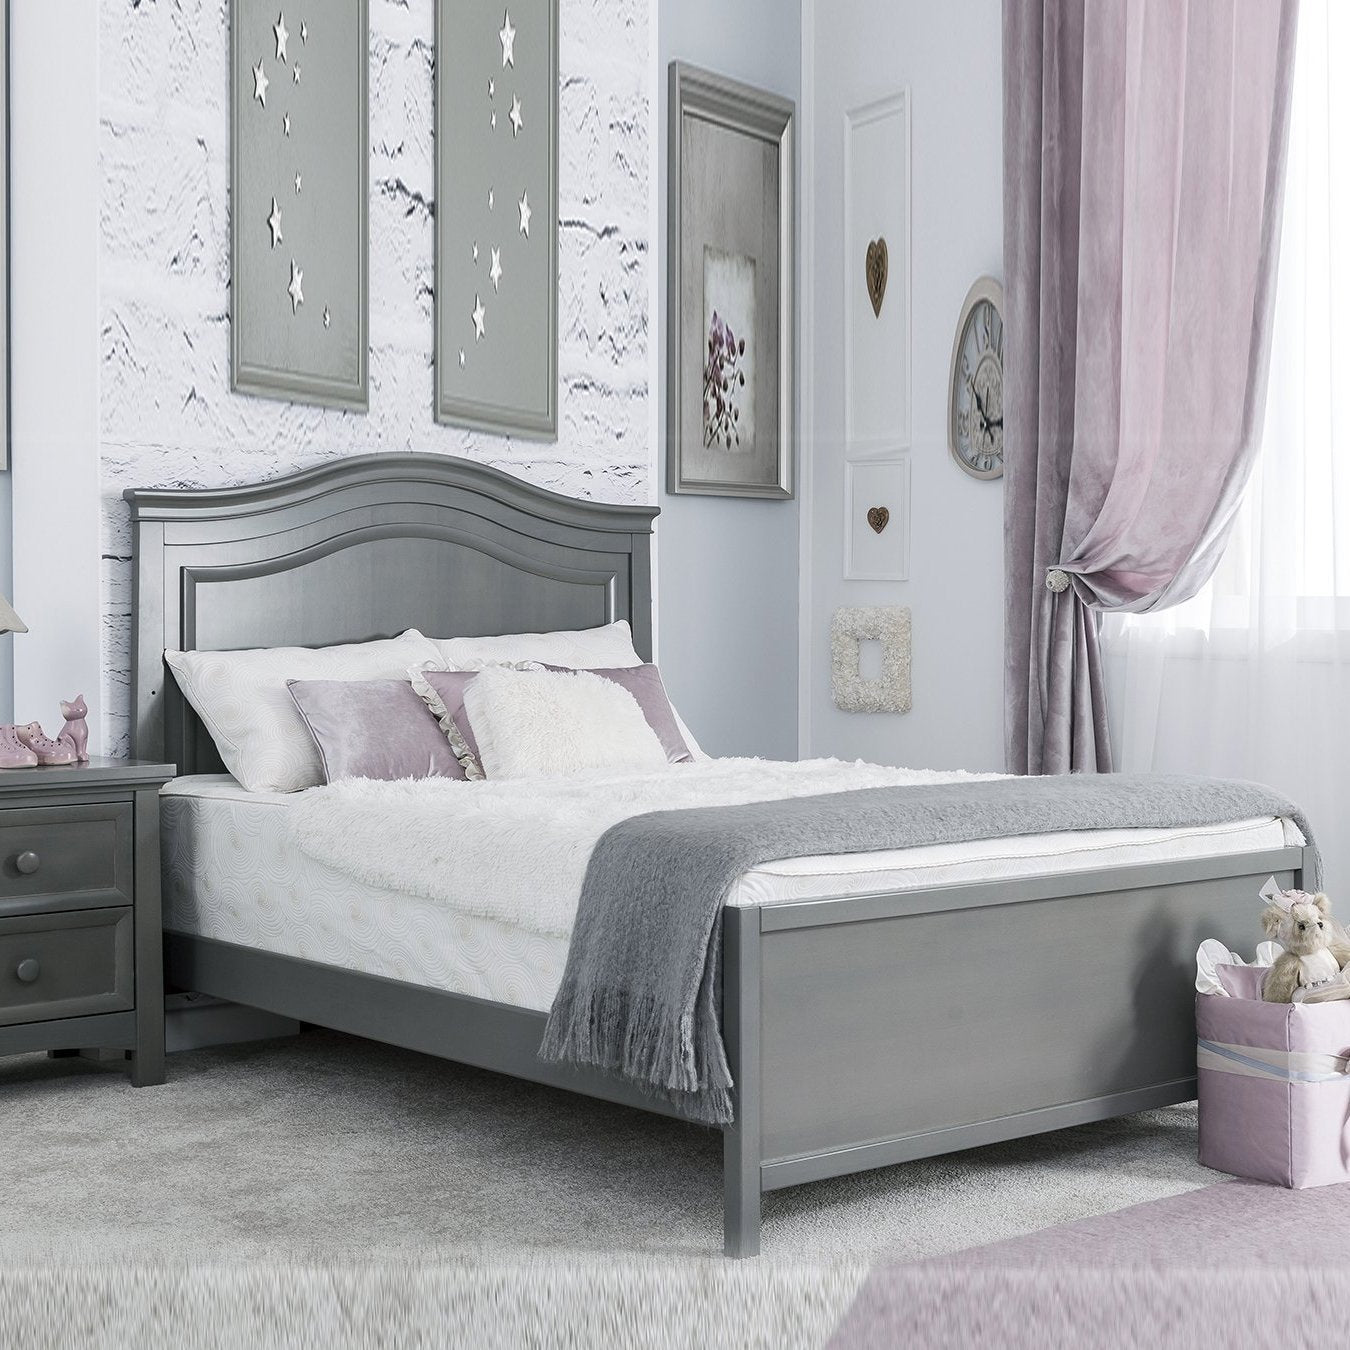 Silva Serena Full Bed With Low Footboard